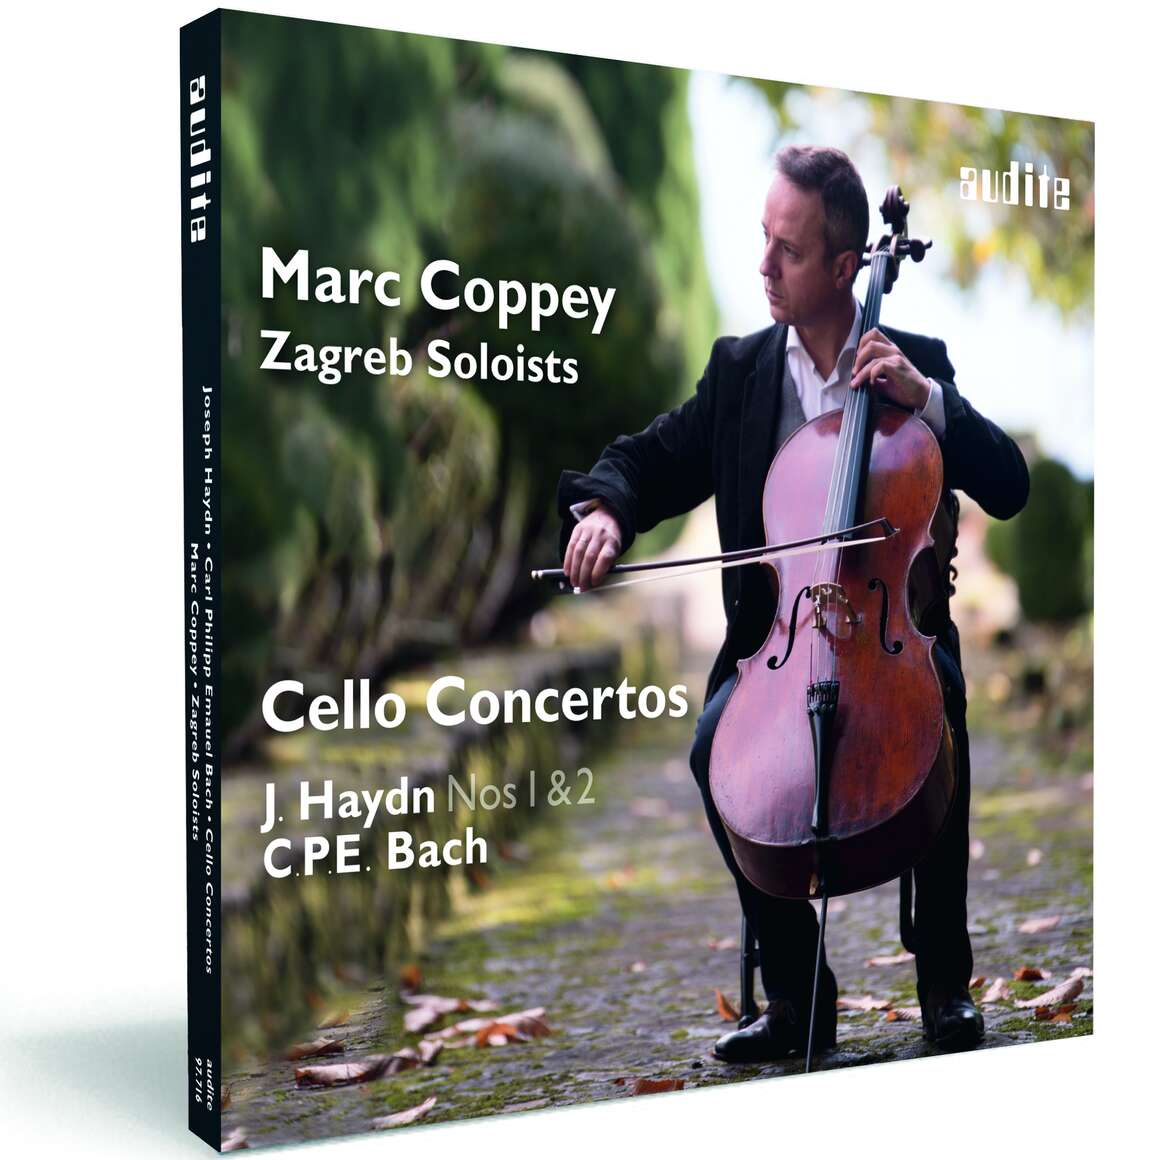 Marc Coppey & The Zagreb Soloists: Cello Concertos by J. Haydn and C. P. E. Bach